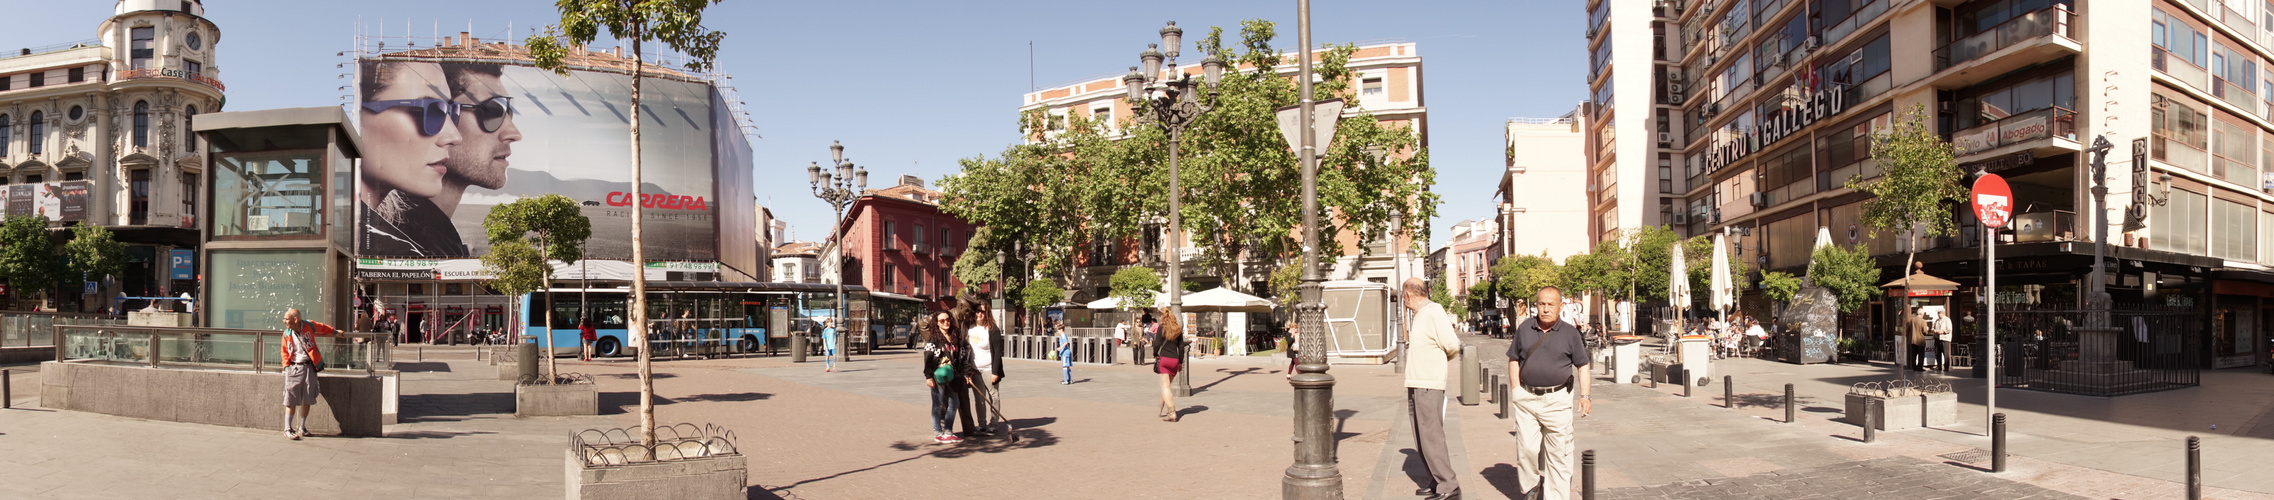 Madrid, Plaza de Santa Ana